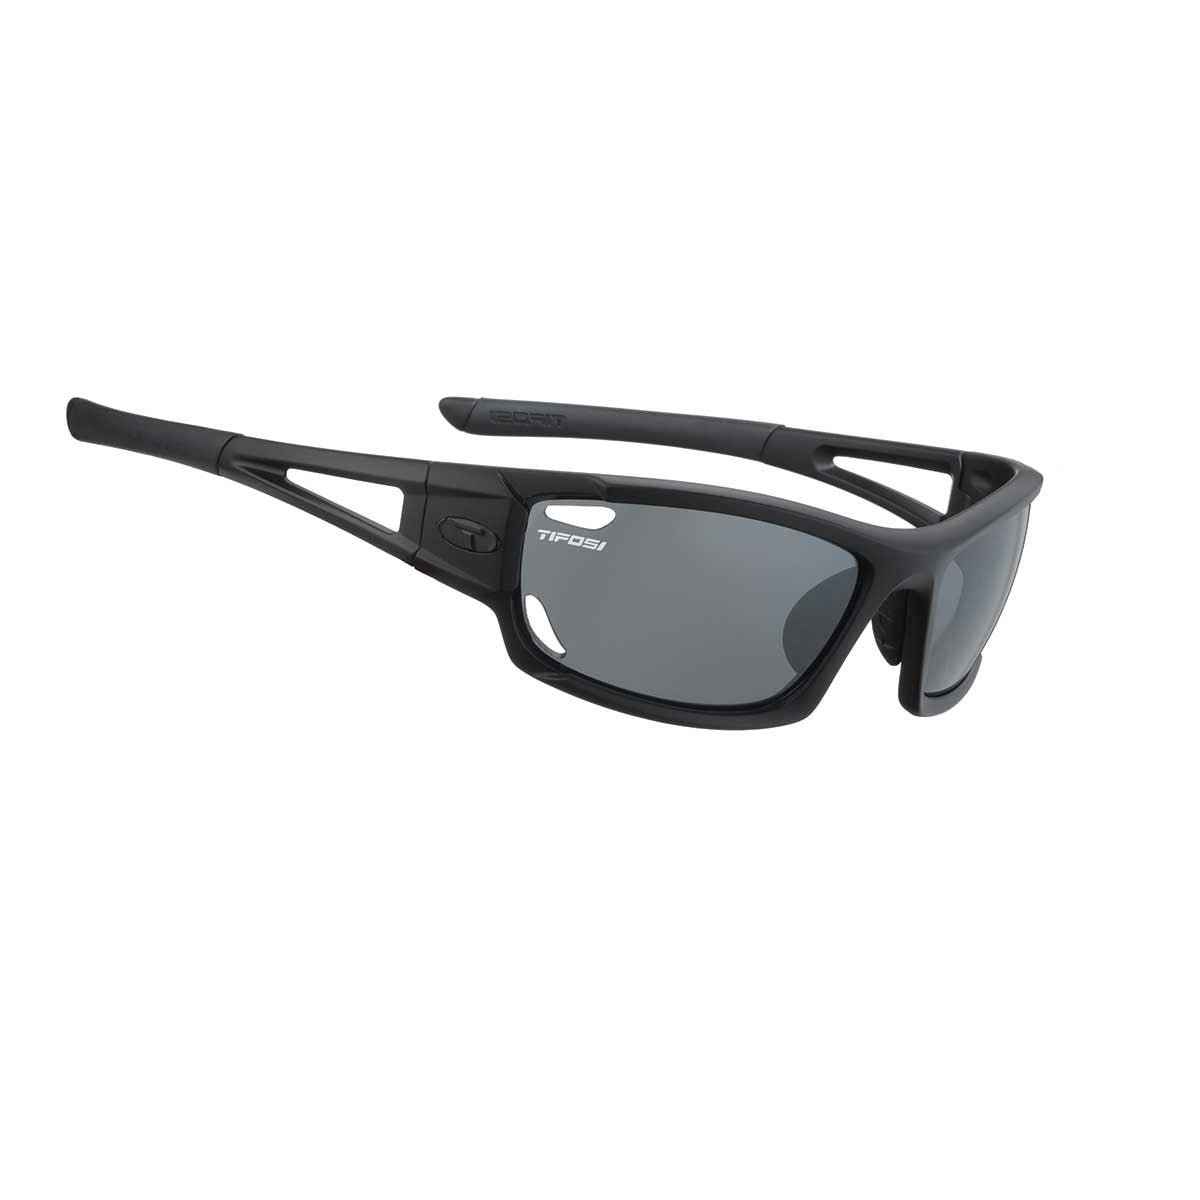 TIFOSI DOLOMITE 2.0 INTERCHANGEABLE SMOKE LENS SUNGLASSES